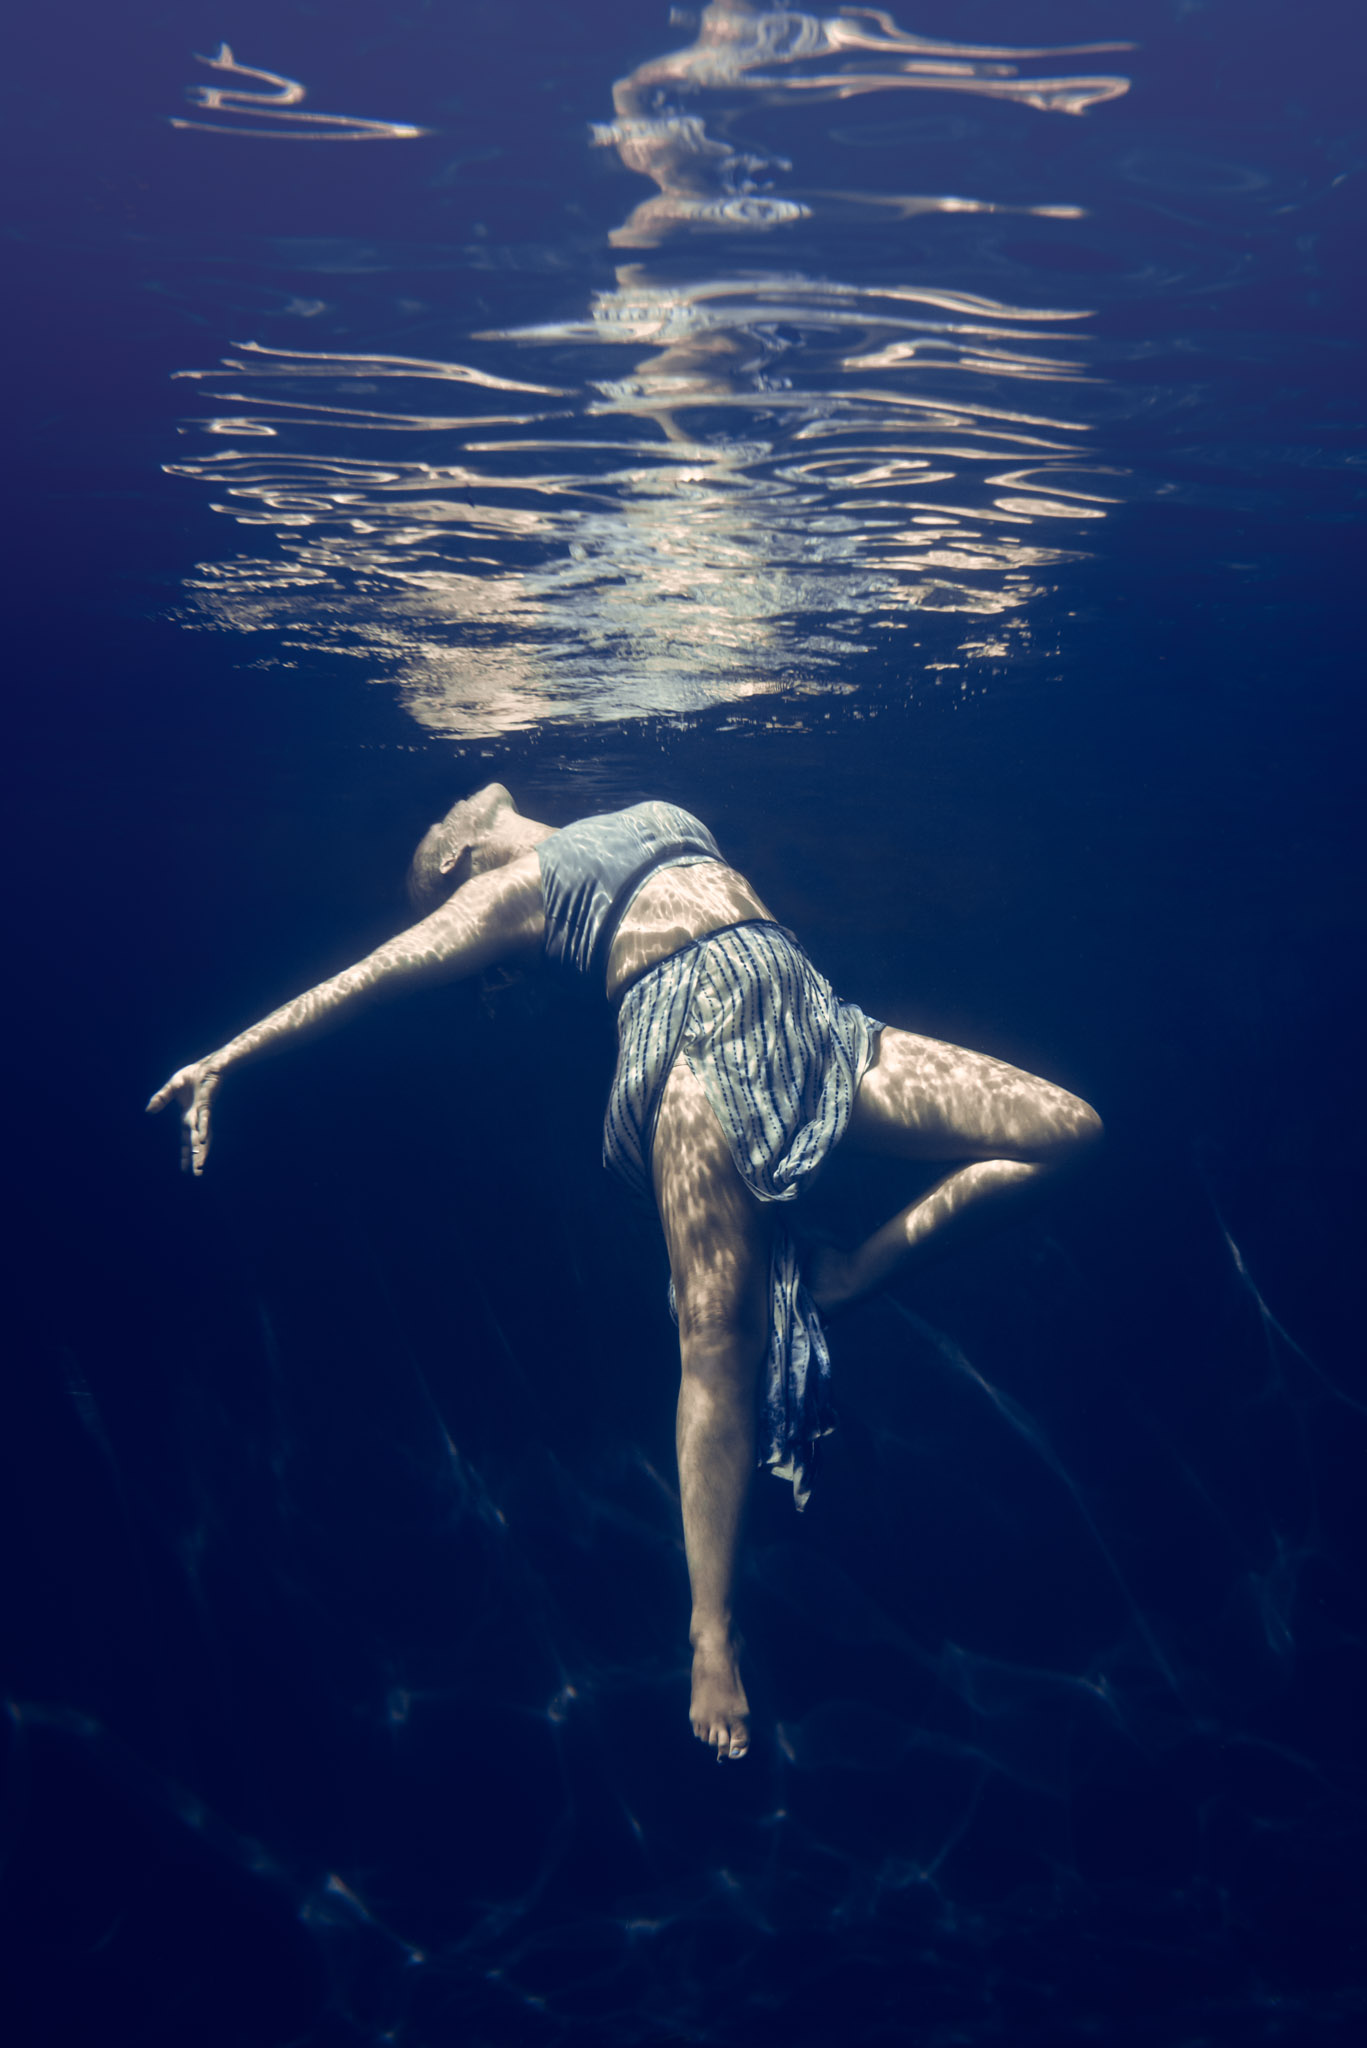 Becky Hammel, a yoga instructor models underwater for new yoga and underwater photography experience in Pleasant Hill, CA.